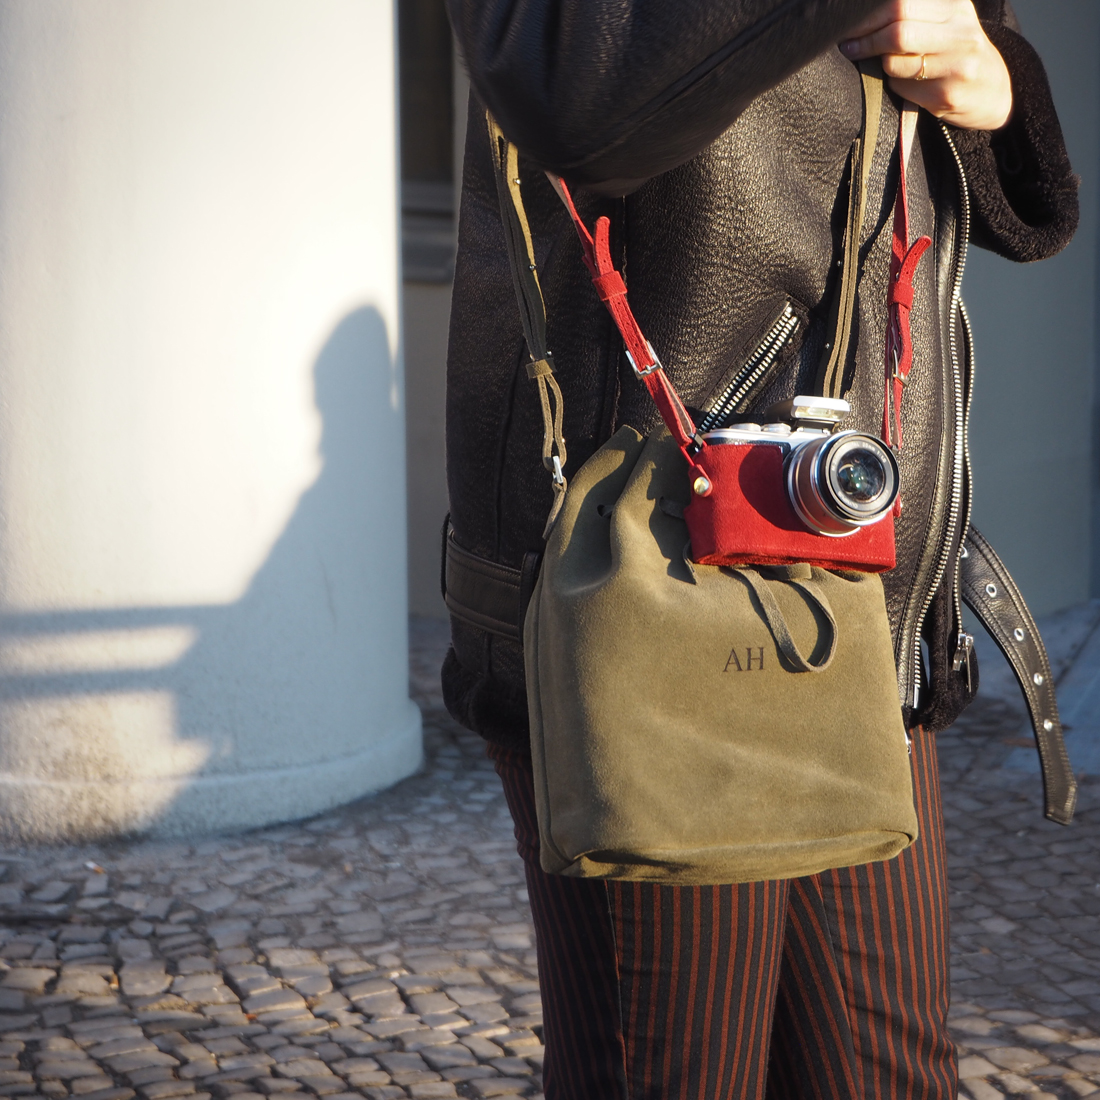 fashion accessories for the Olympus PEN E-PL8 camera outfit camera bucket bag